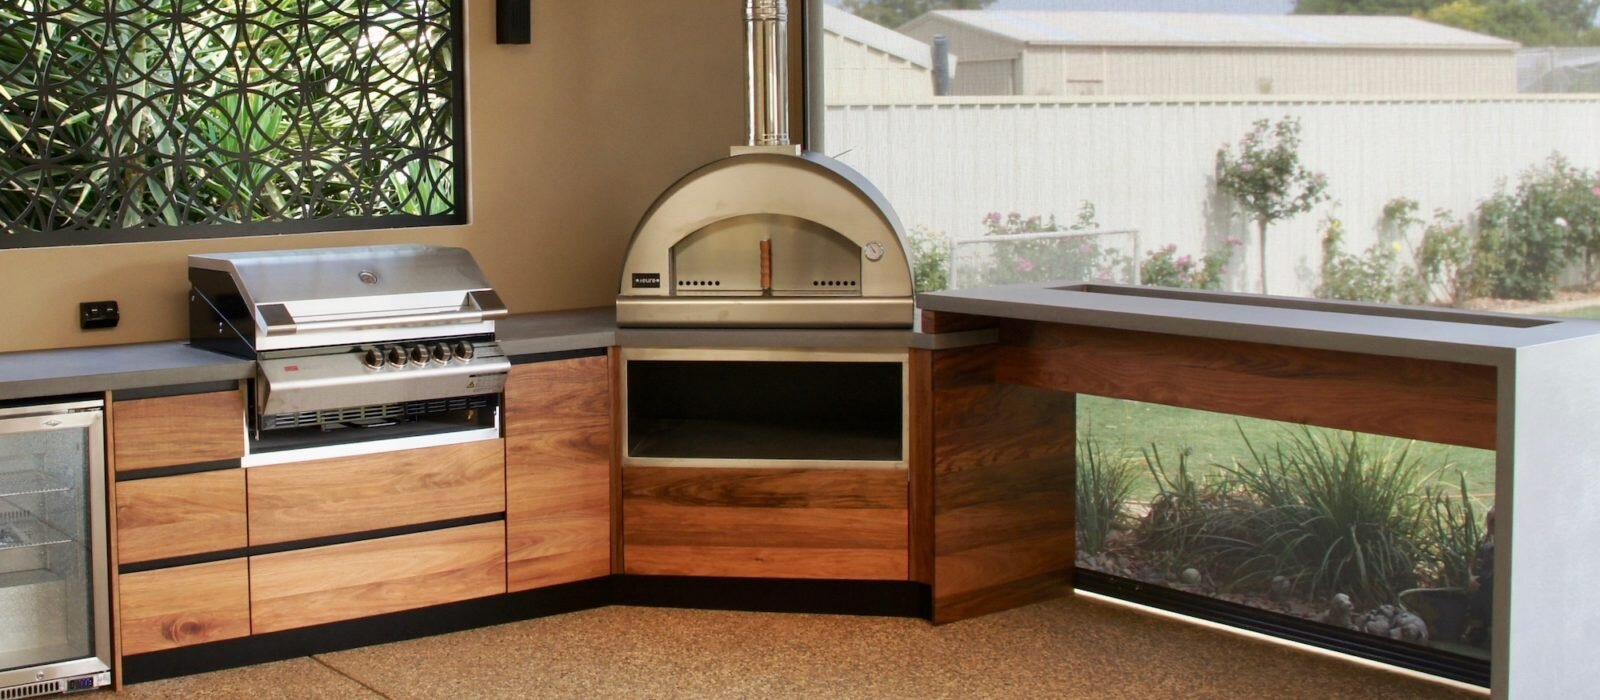 Install The Flat Pack Outdoor Kitchen Cabinets For Overall Value Enhancement